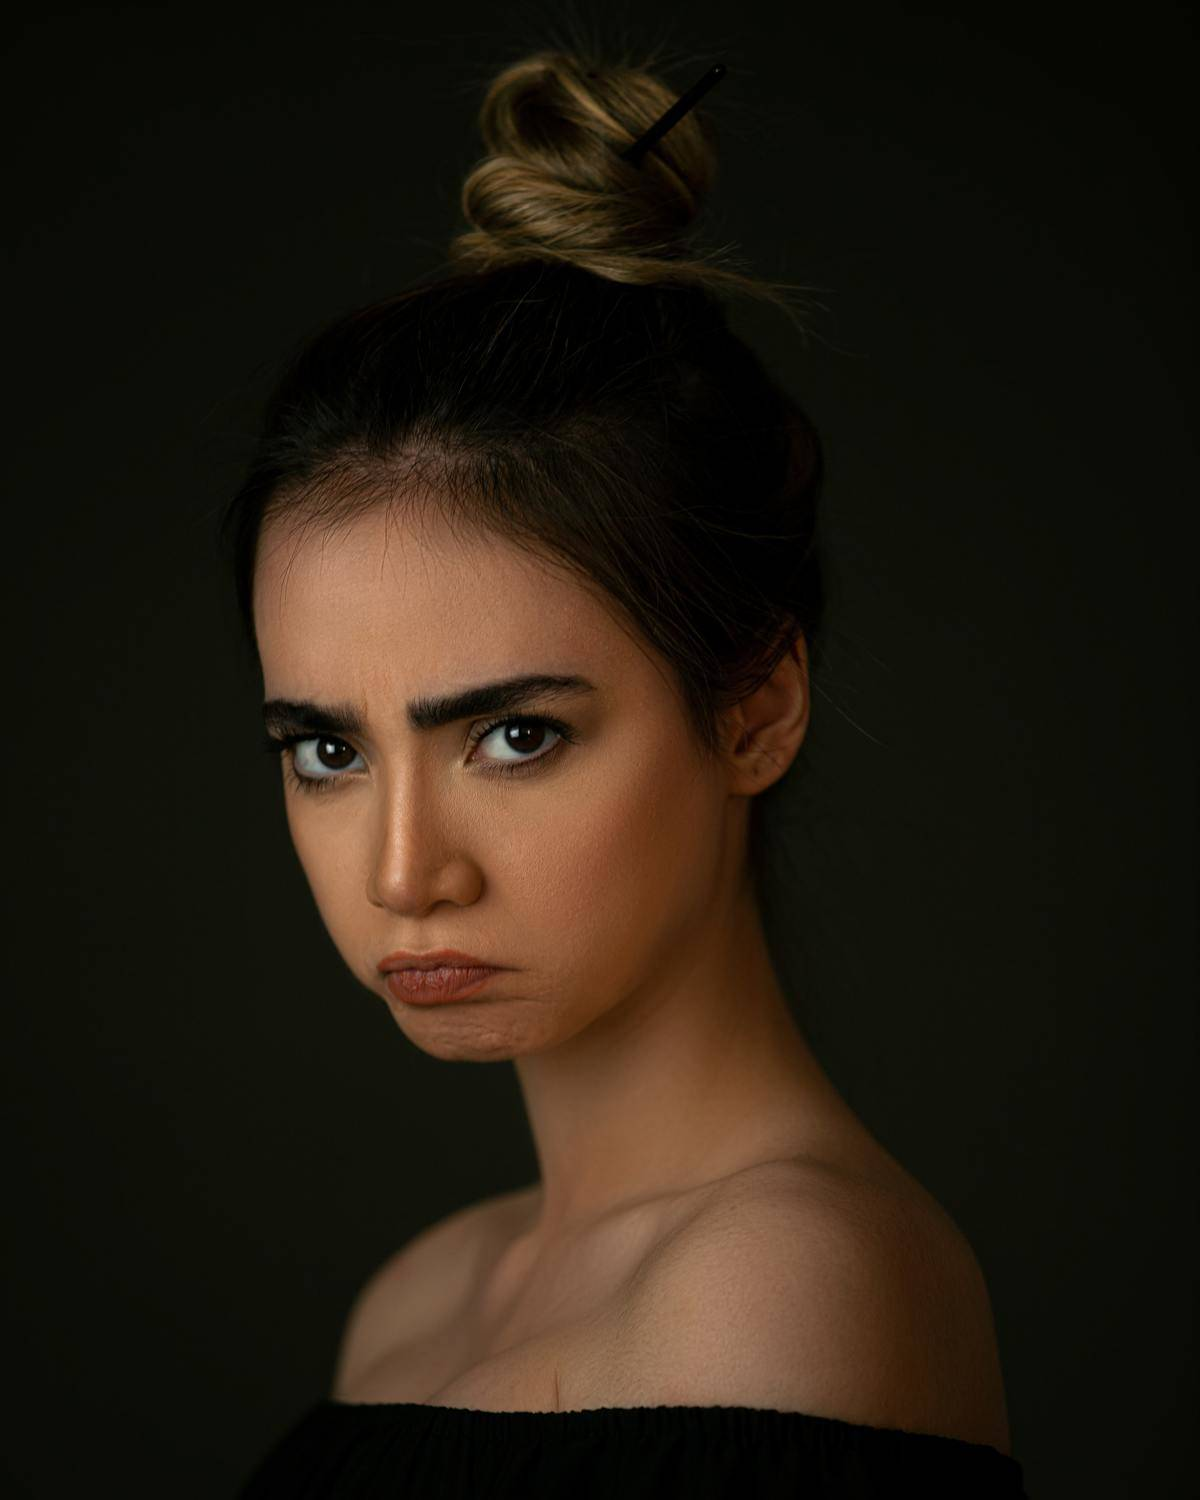 woman with pouty face and hair bun